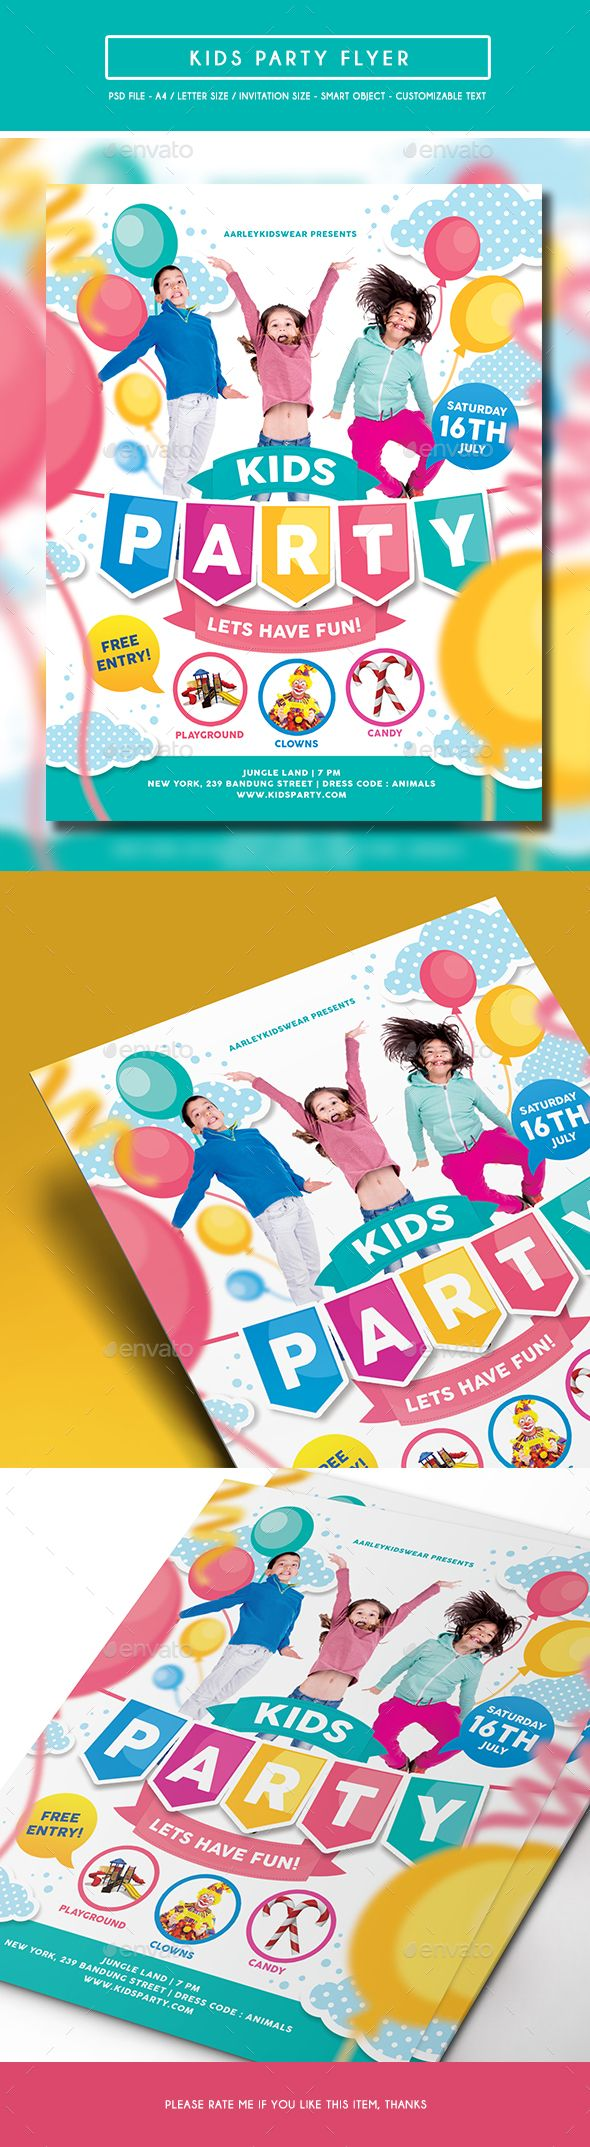 Kids Party Flyer / Invitation Template PSD. Download here…